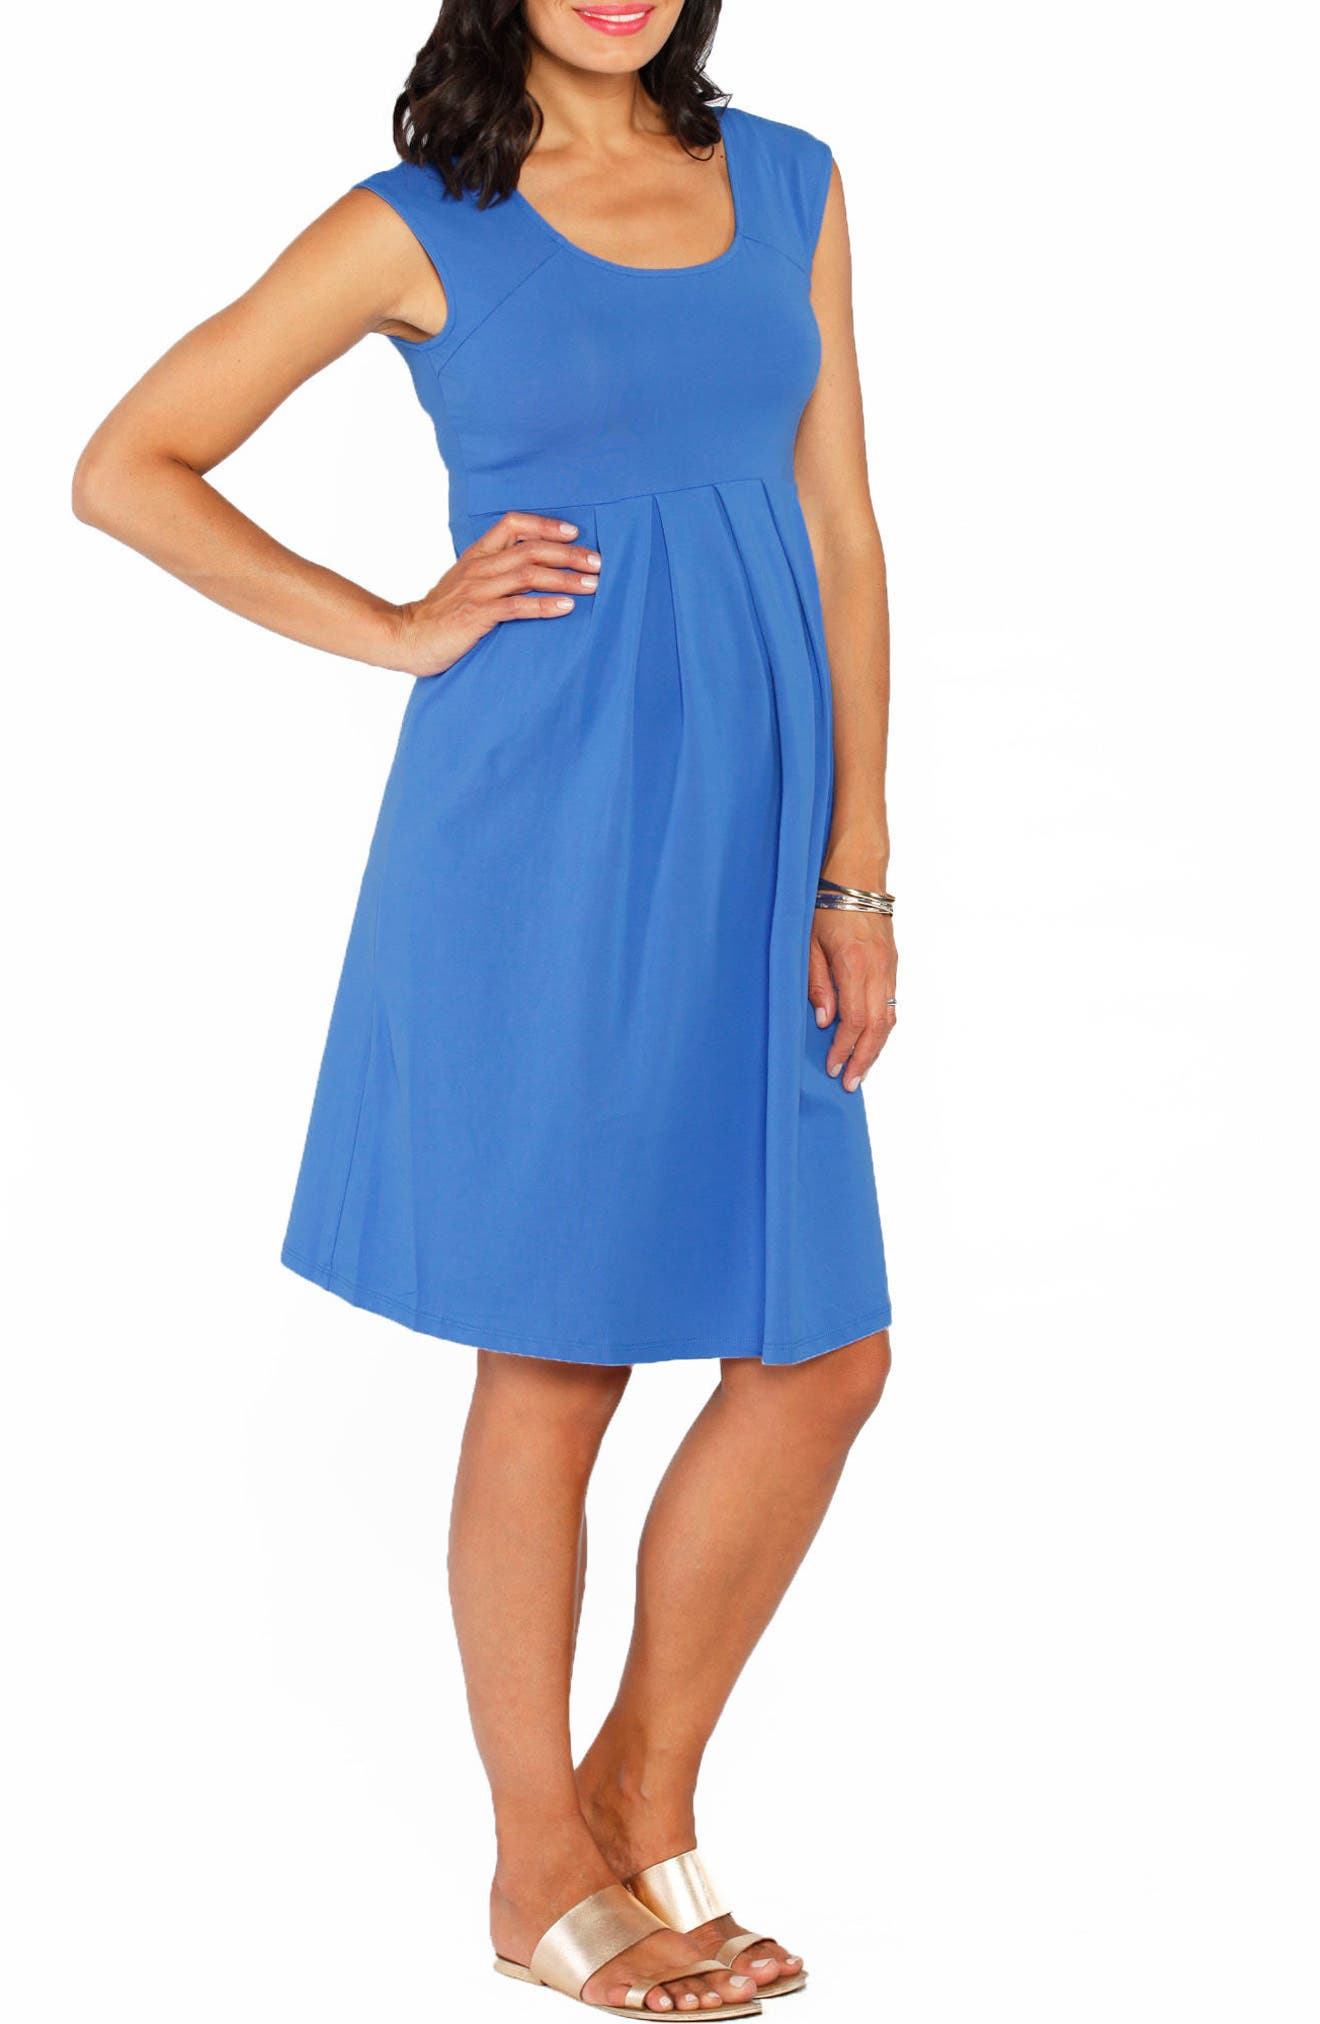 Angel Maternity Stretch Cotton Maternity Dress, Blue